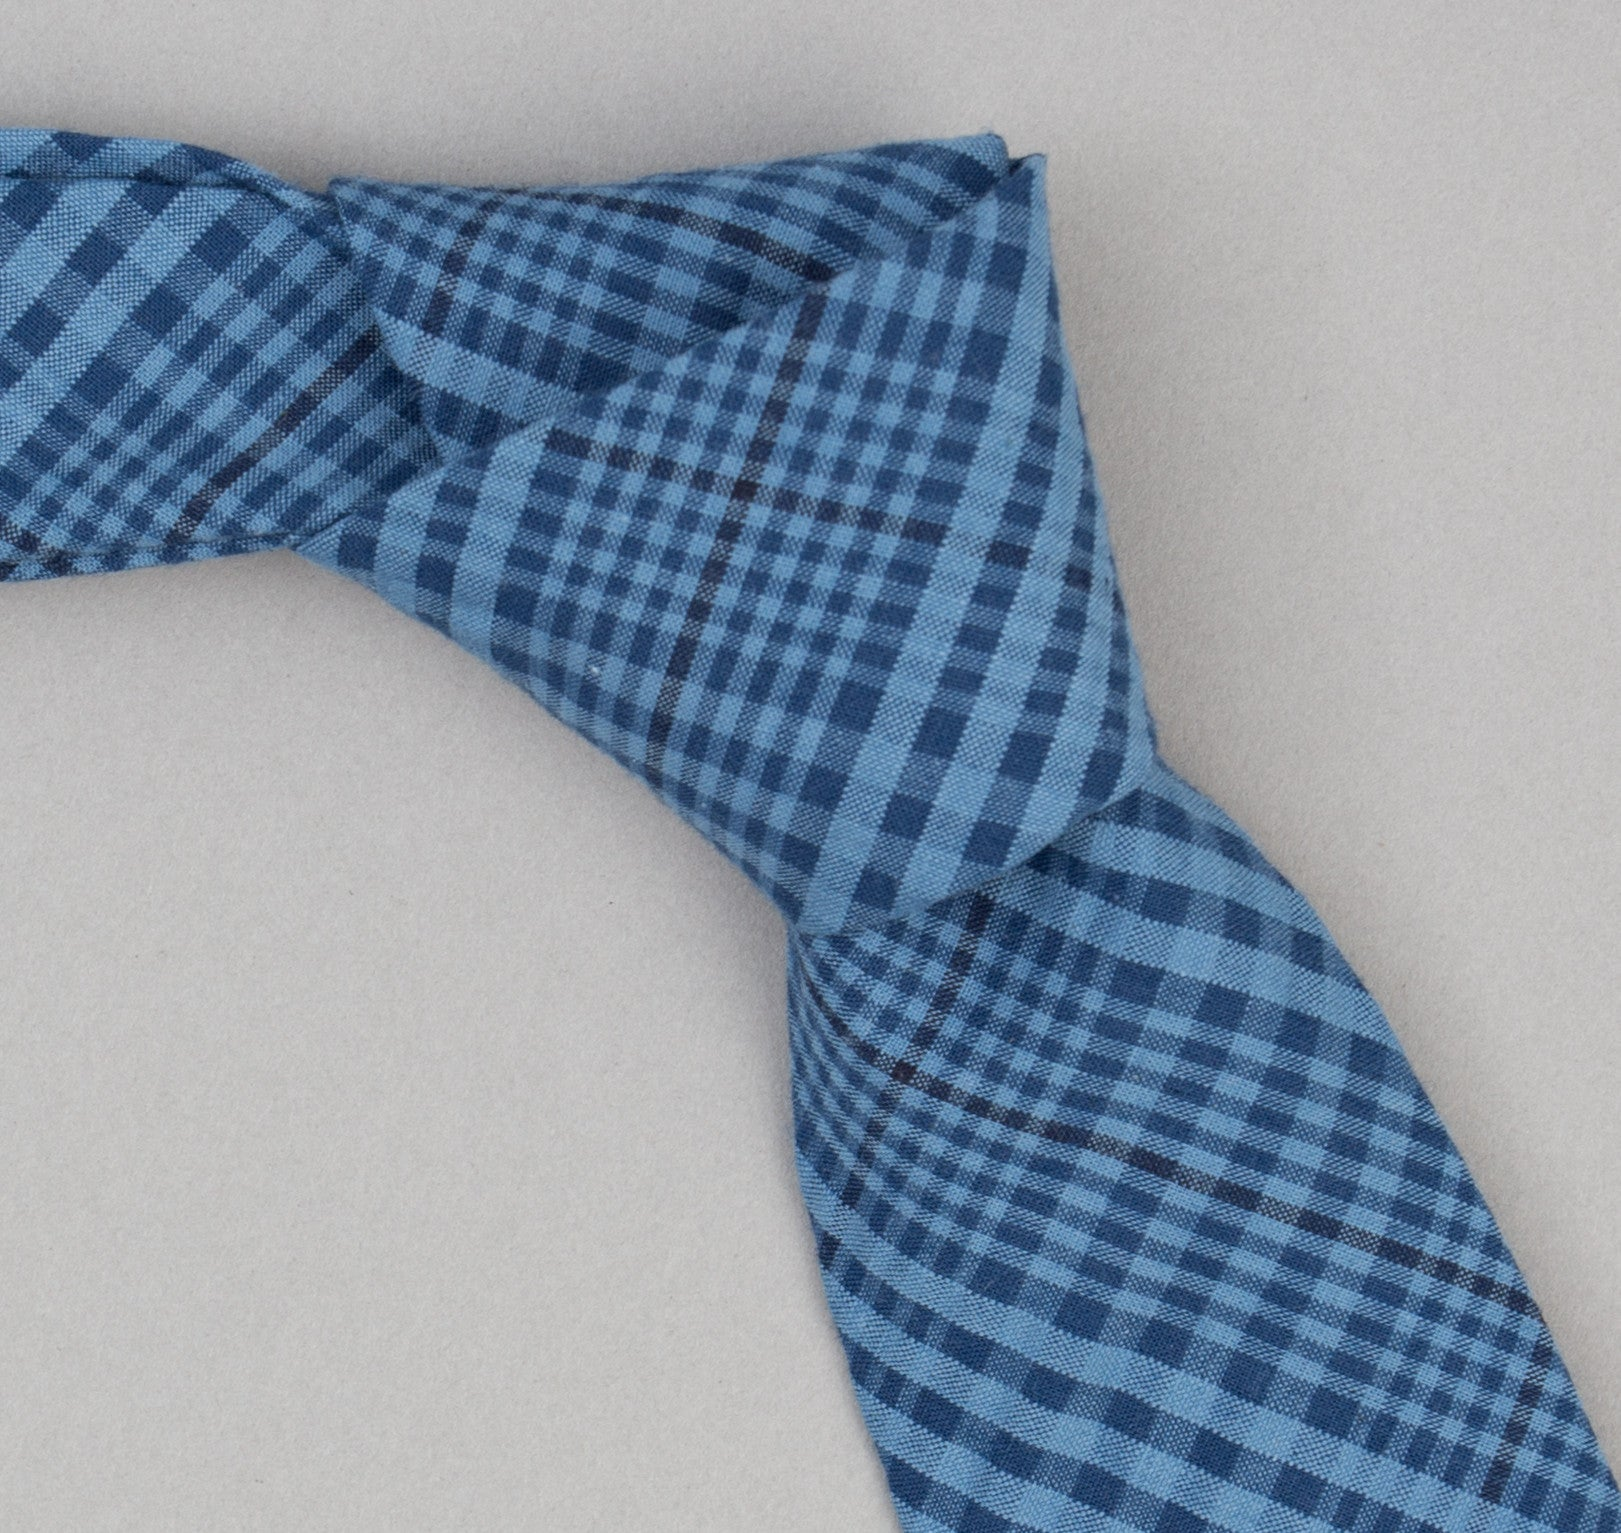 The Hill-Side - Indigo Seersucker Check Necktie - PT1-332 - image 1